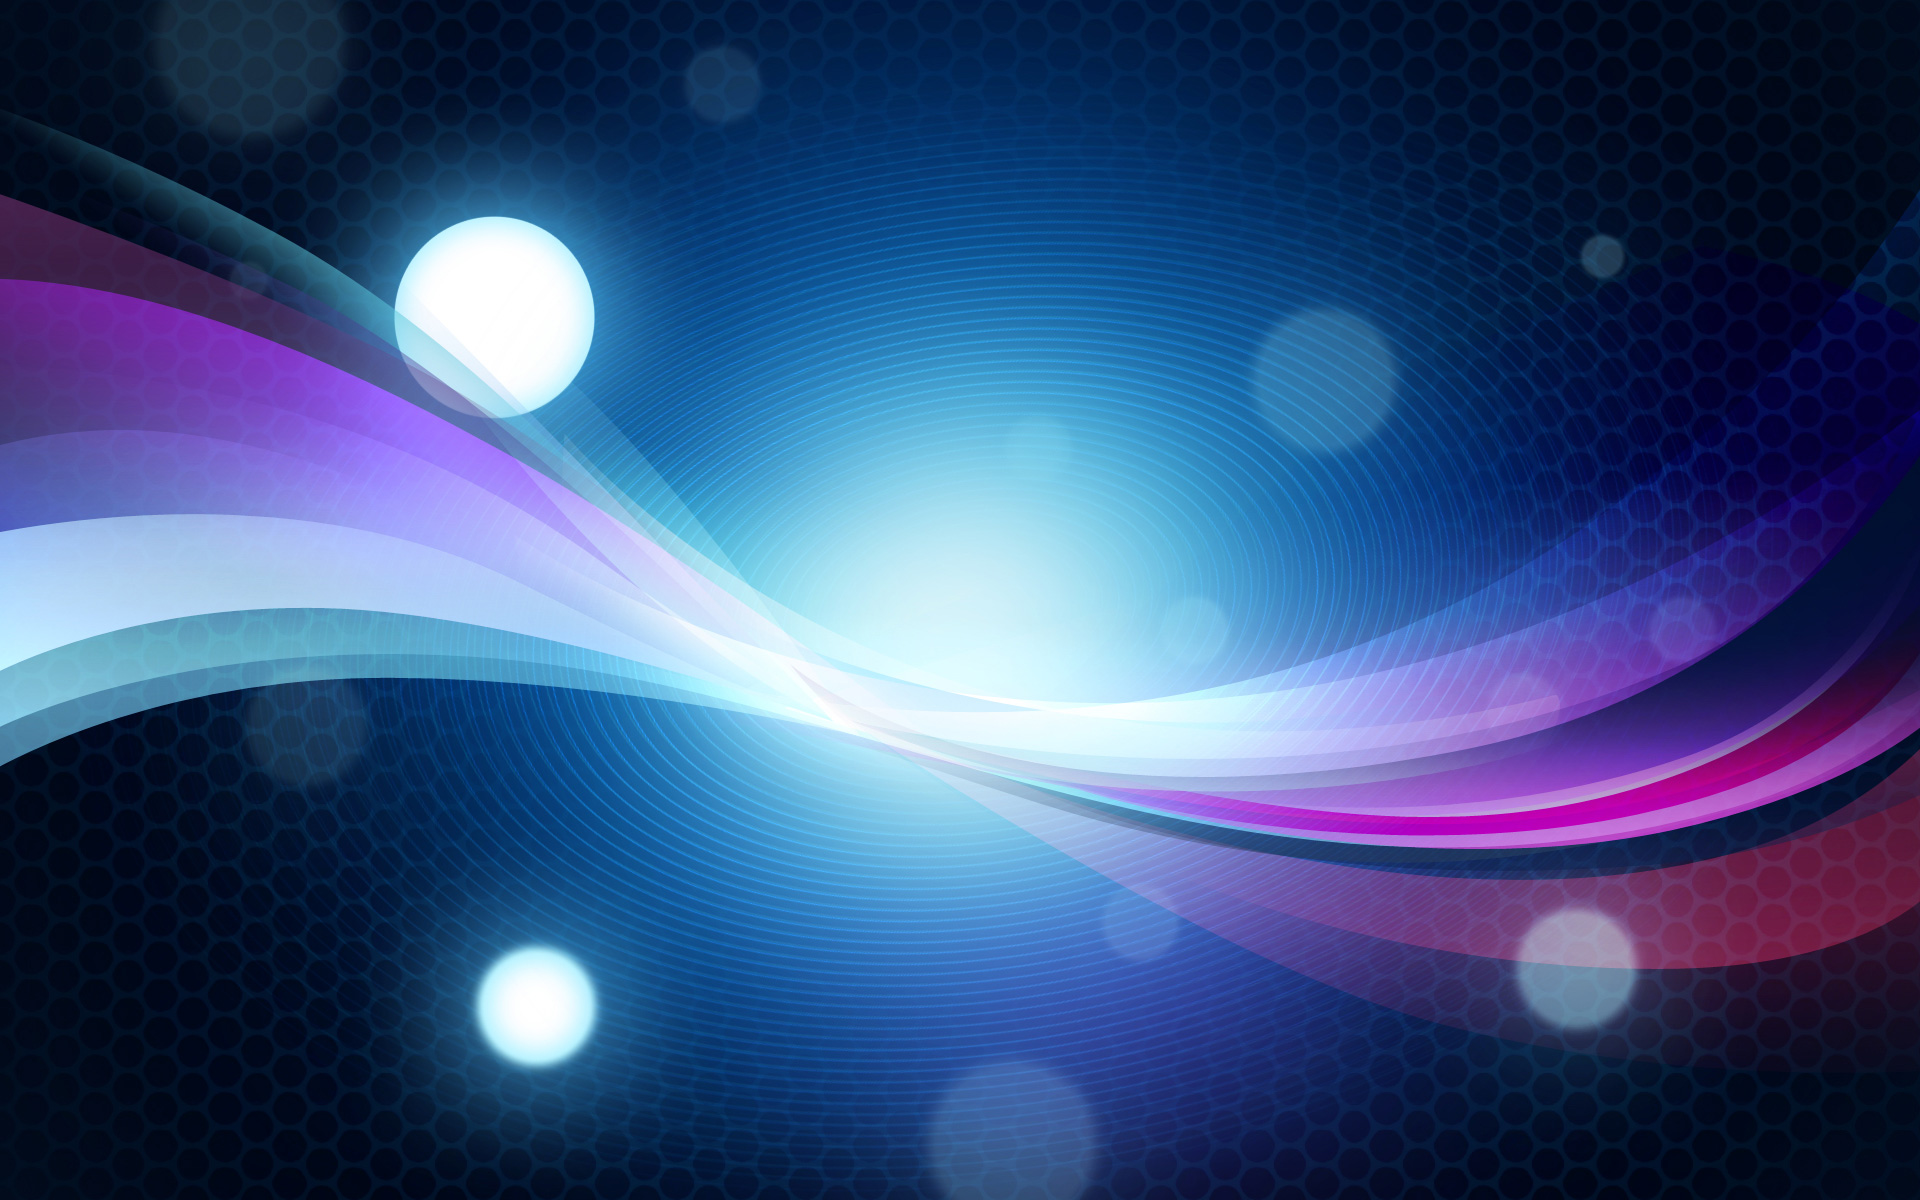 Photoshop Background Effects wallpaper 131545 1920x1200